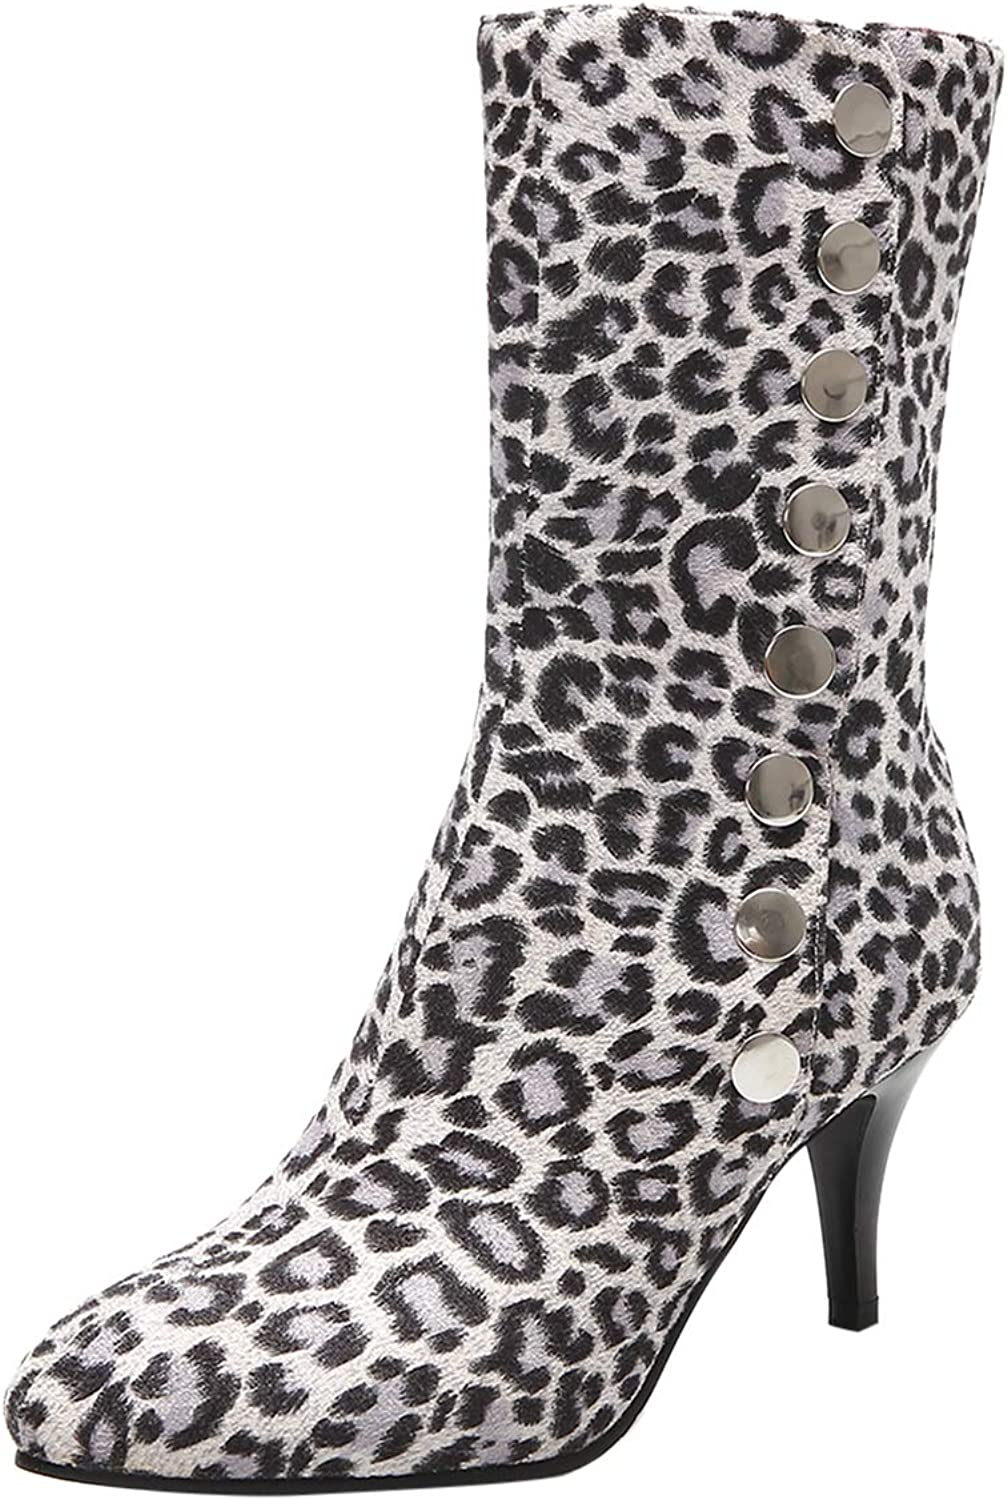 BIGTREE Ankle Boots for Women Fold Down Booties Leopard Pattern with Kitten Heels